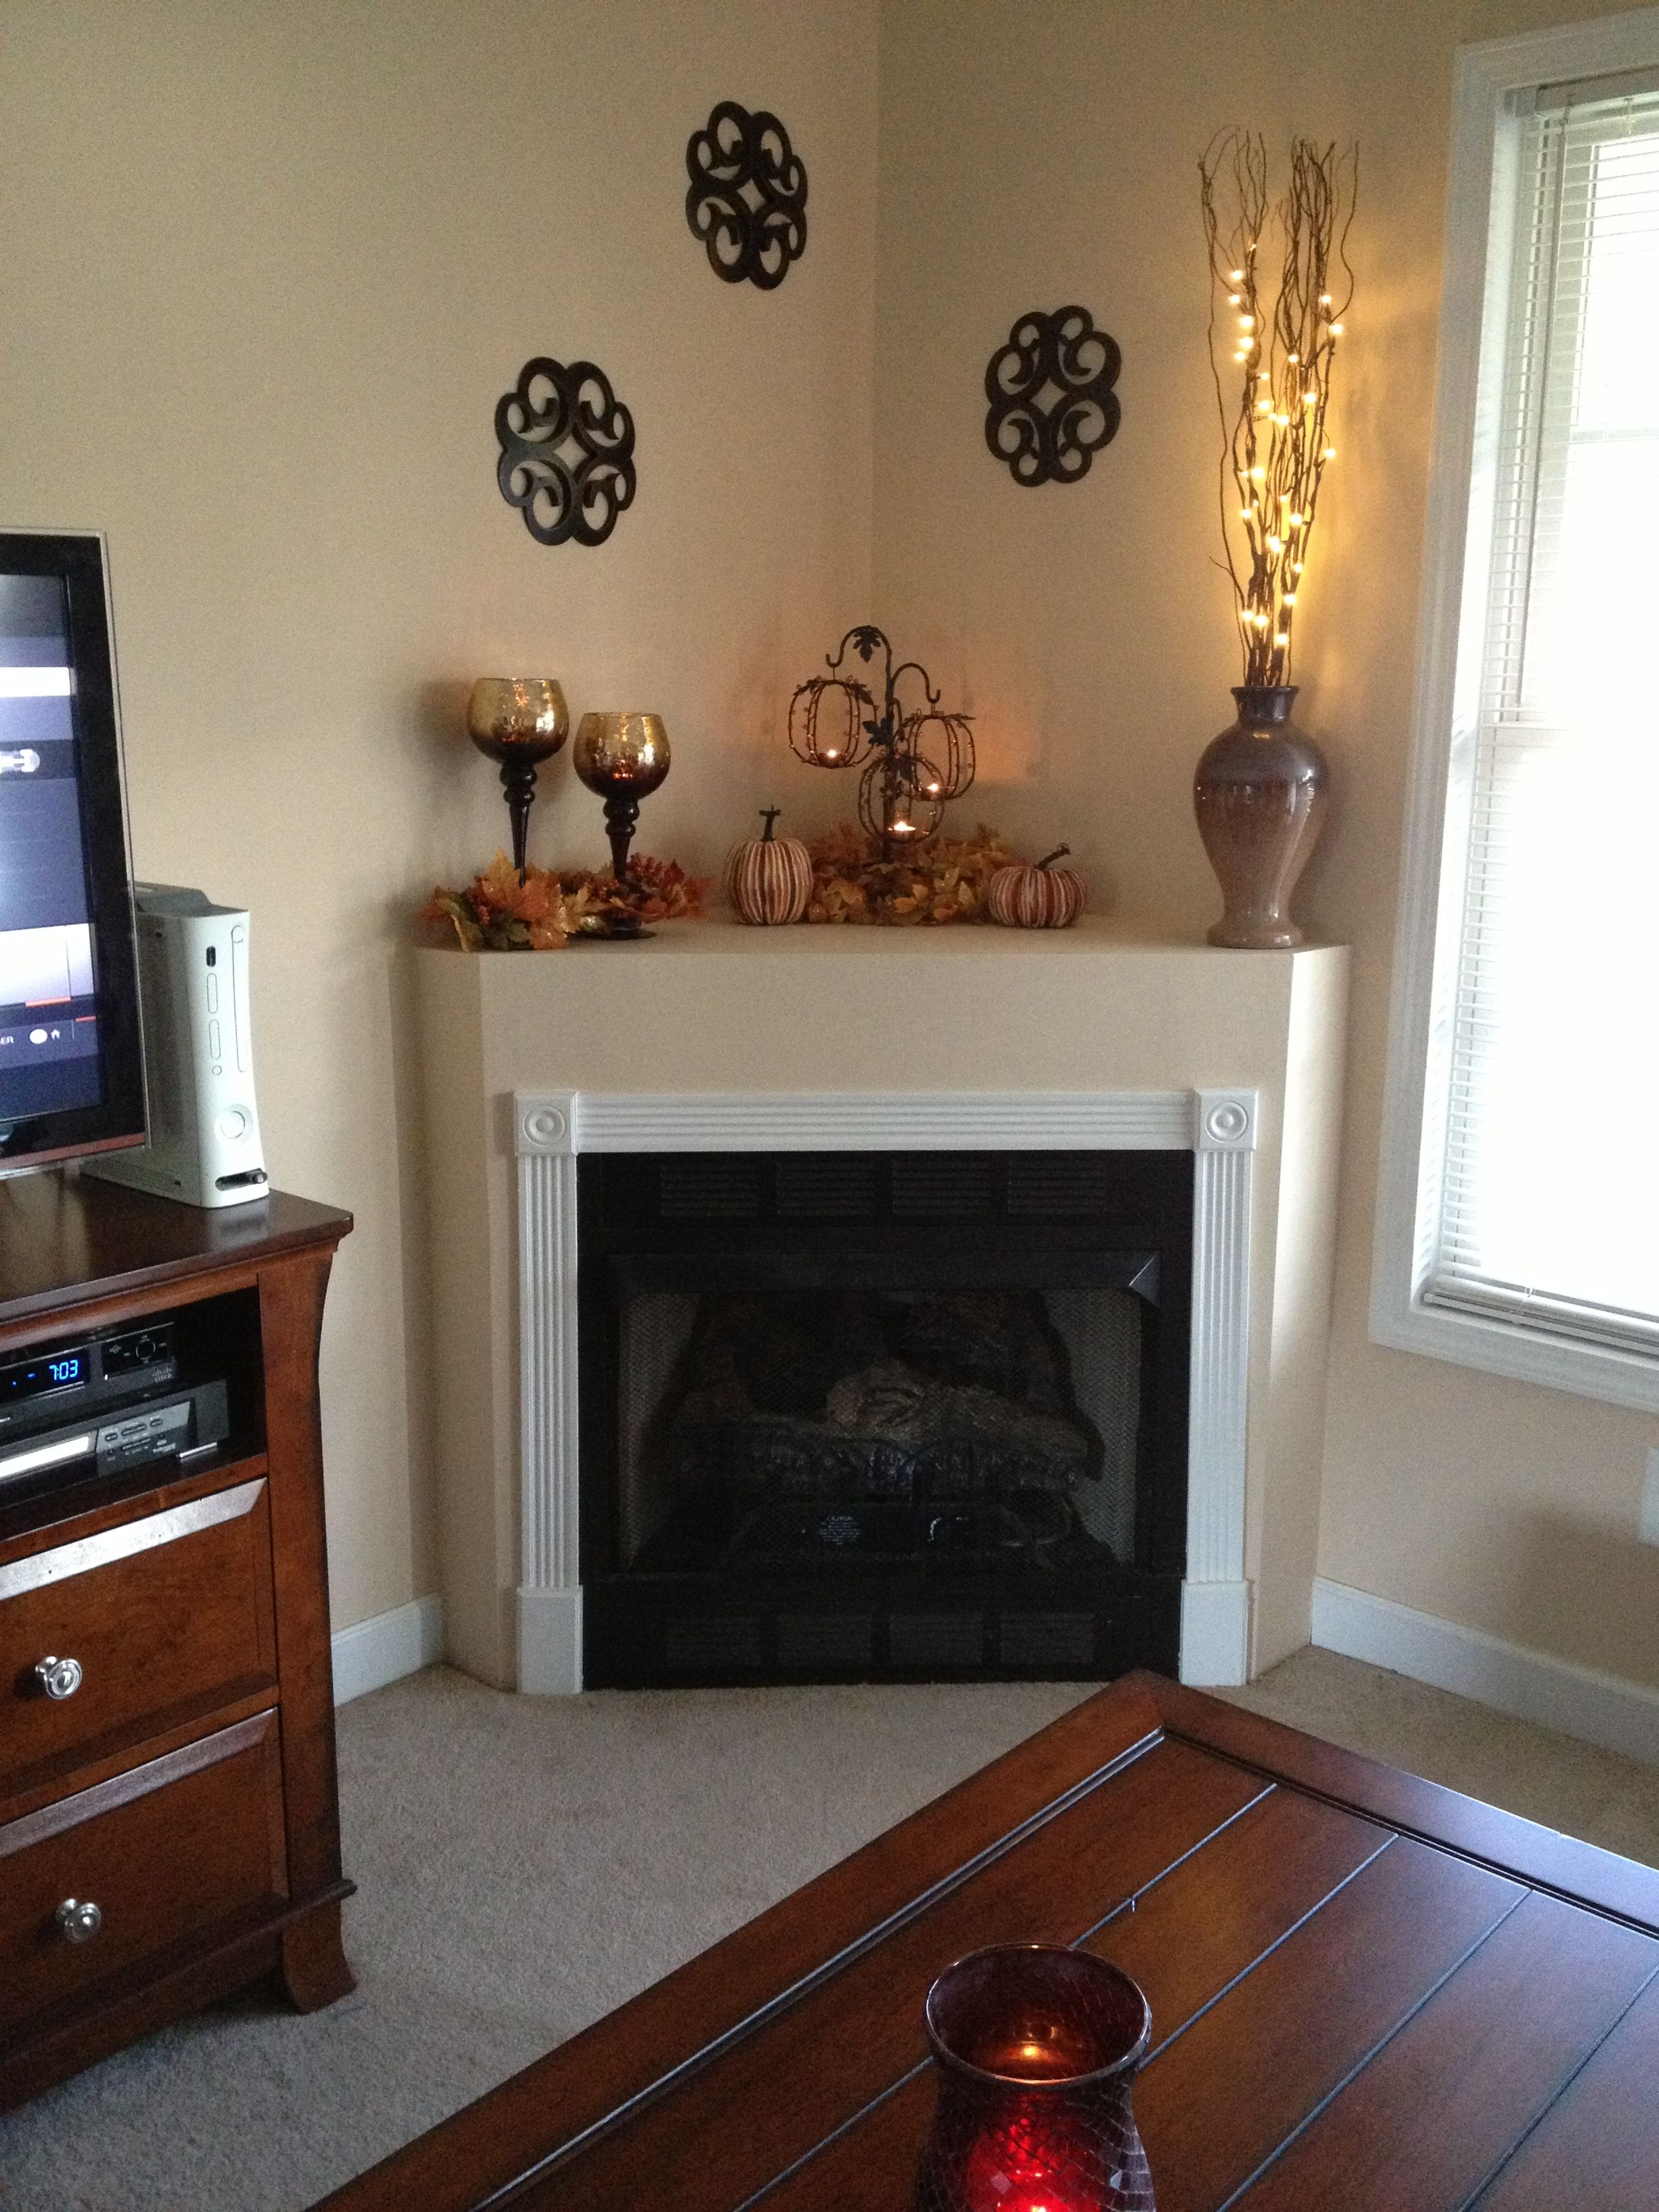 Fireplace Decoration With Edcdeacbbee Fireplace Design Fireplace Corner Fireplace Mantle Fall Decor. Miss My Fireplace